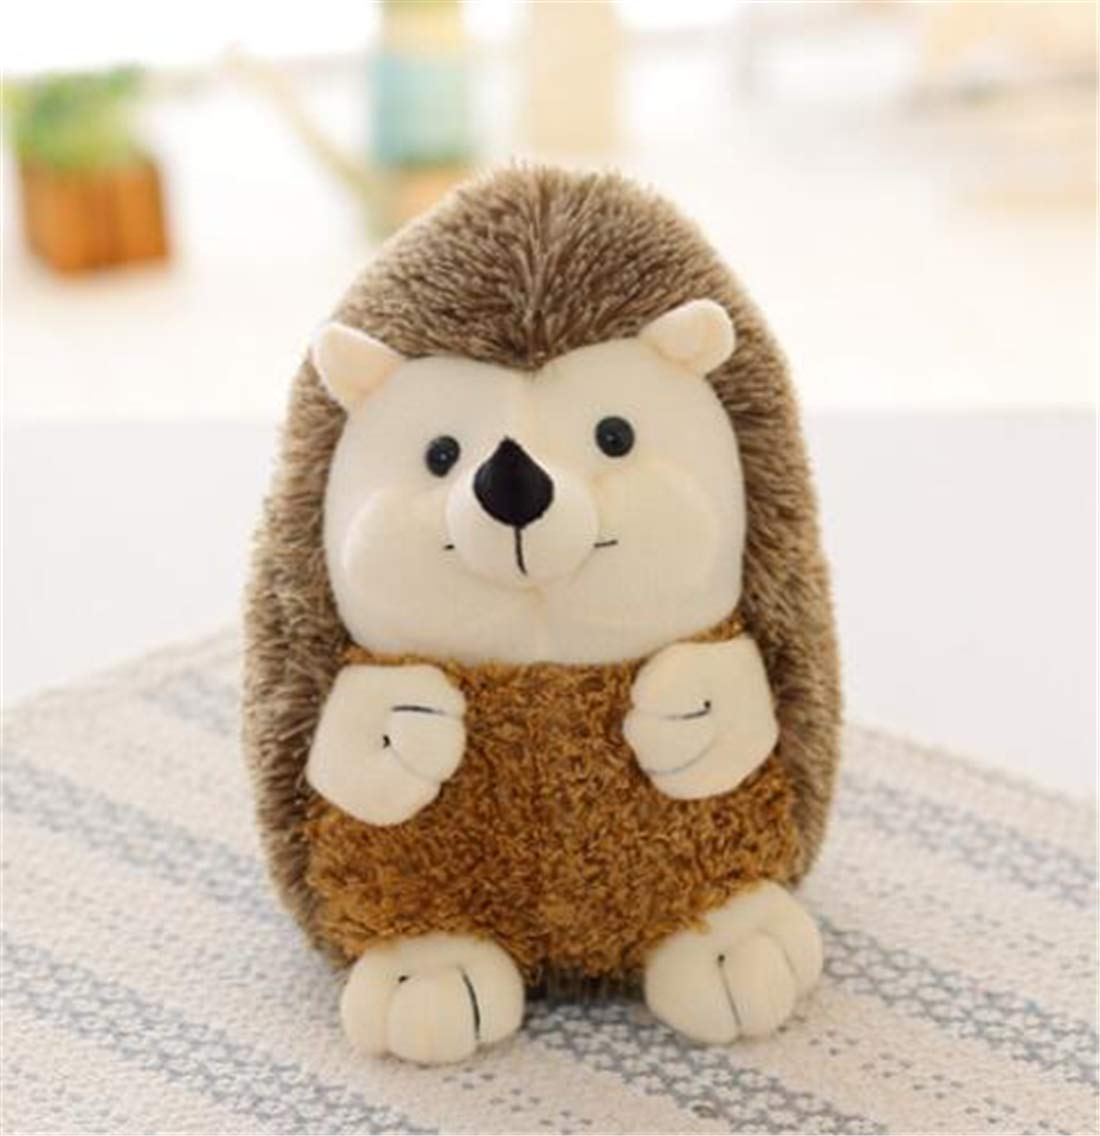 Tmrow 1PC Cute Throw Pillow Stuffed Plush Animal Toys for Kids Doll Gift Hedgehog Shape Back Cushion Home Decoration 30cm